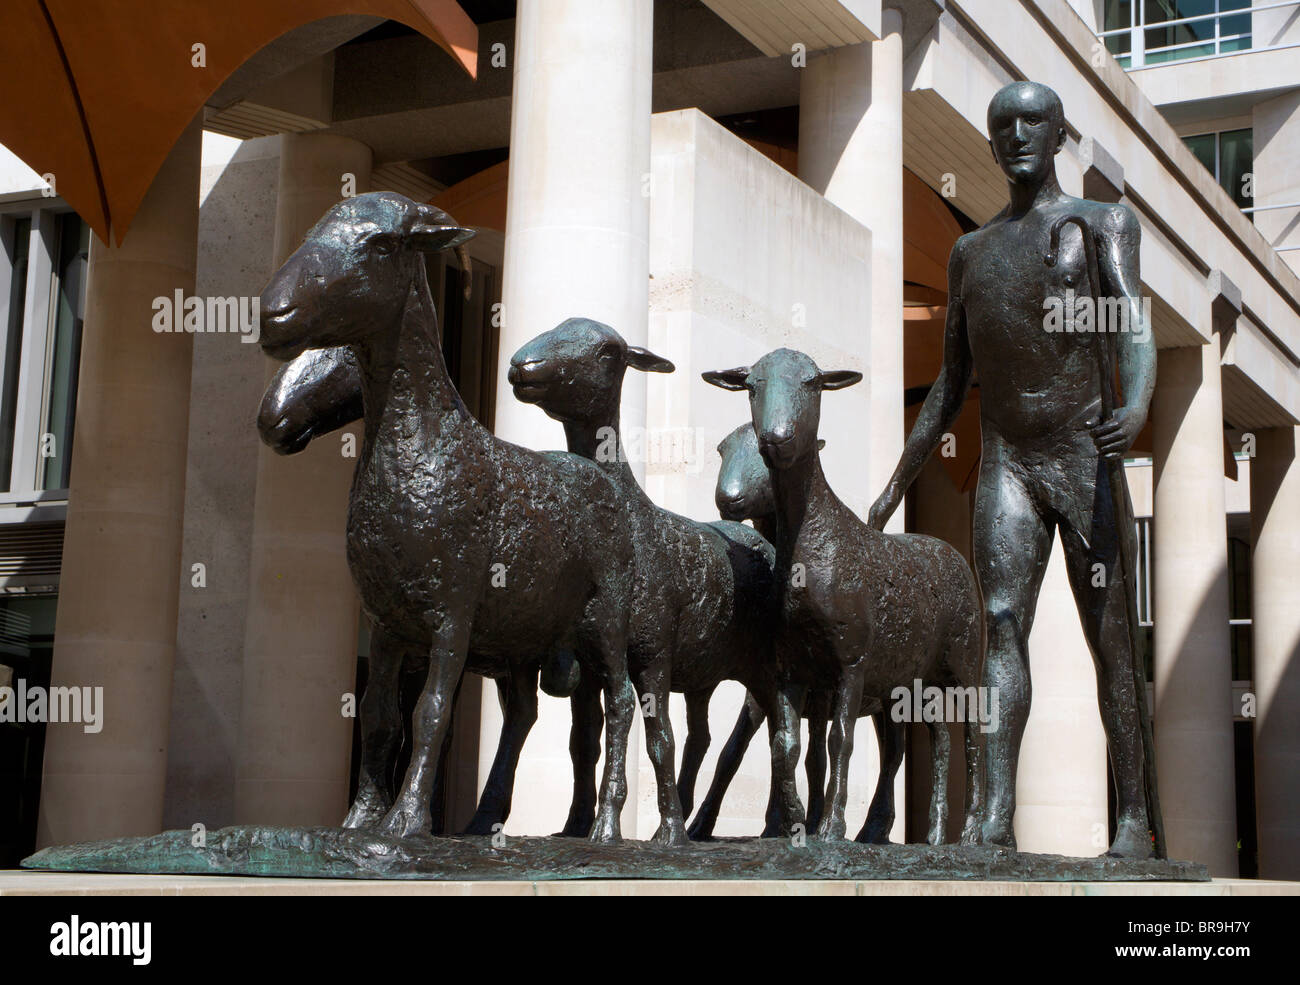 London - Paternoster square - statue of Shepherd and Sheep,Dame Elisabeth Frink - Stock Image